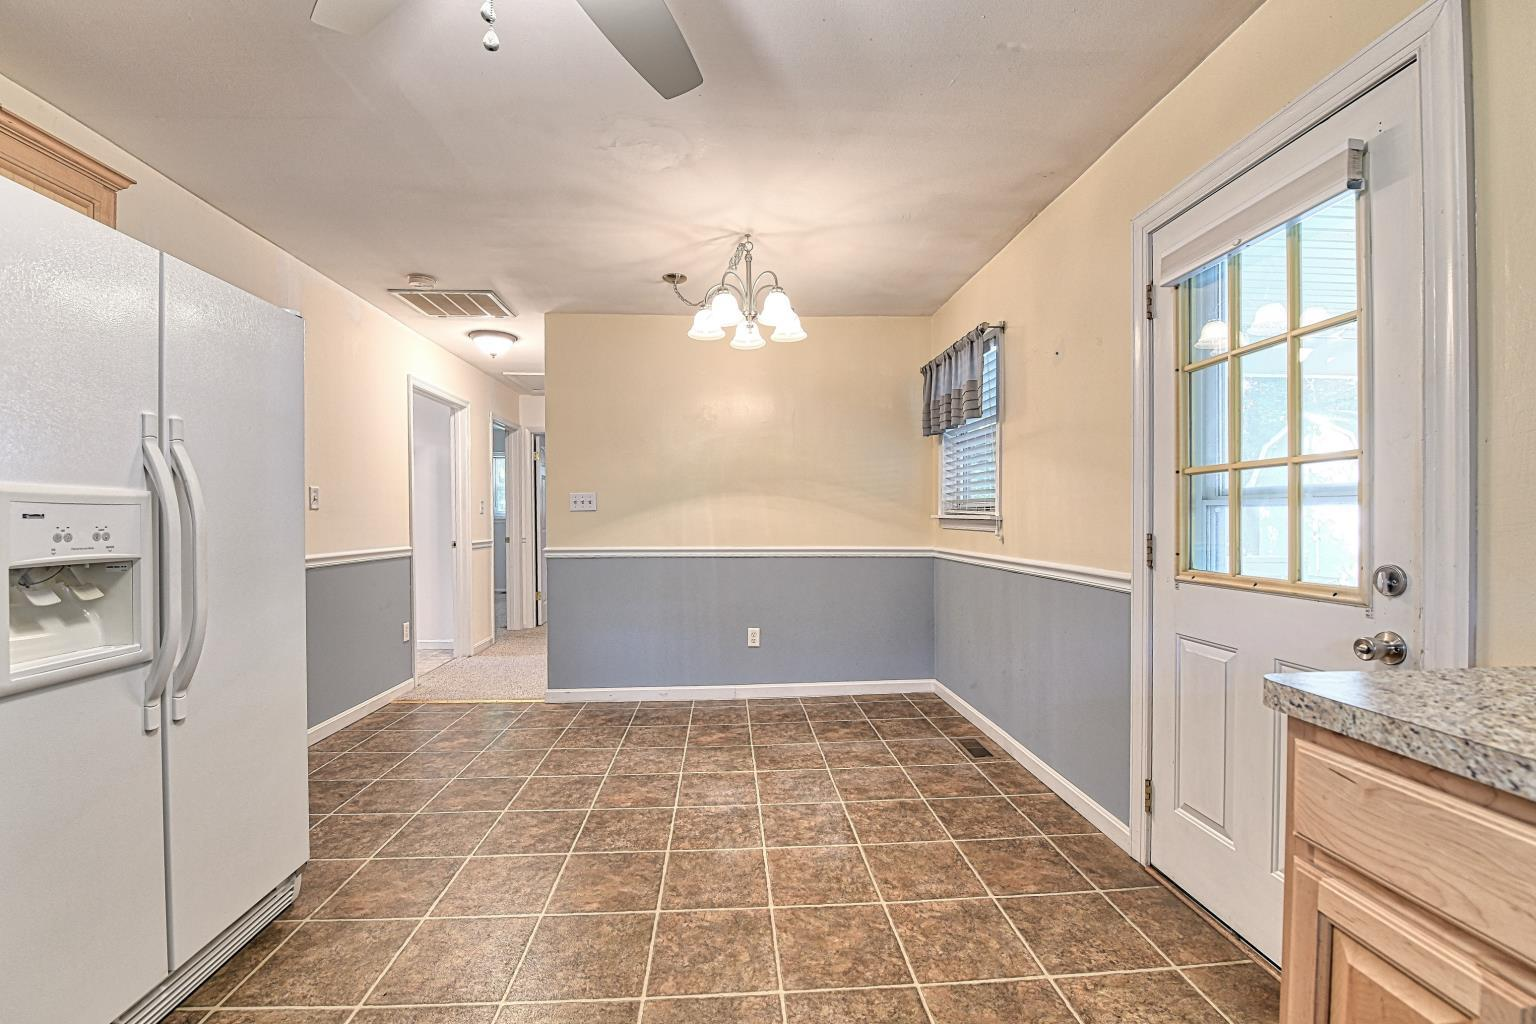 Large Eat In Kitchen at 29783 Skyview Drive, in Golden Beach MD, Southern MD.  This home is listed by Your Golden Beach Realtor, Marie Lally.  Call Marie at 301-748-8698